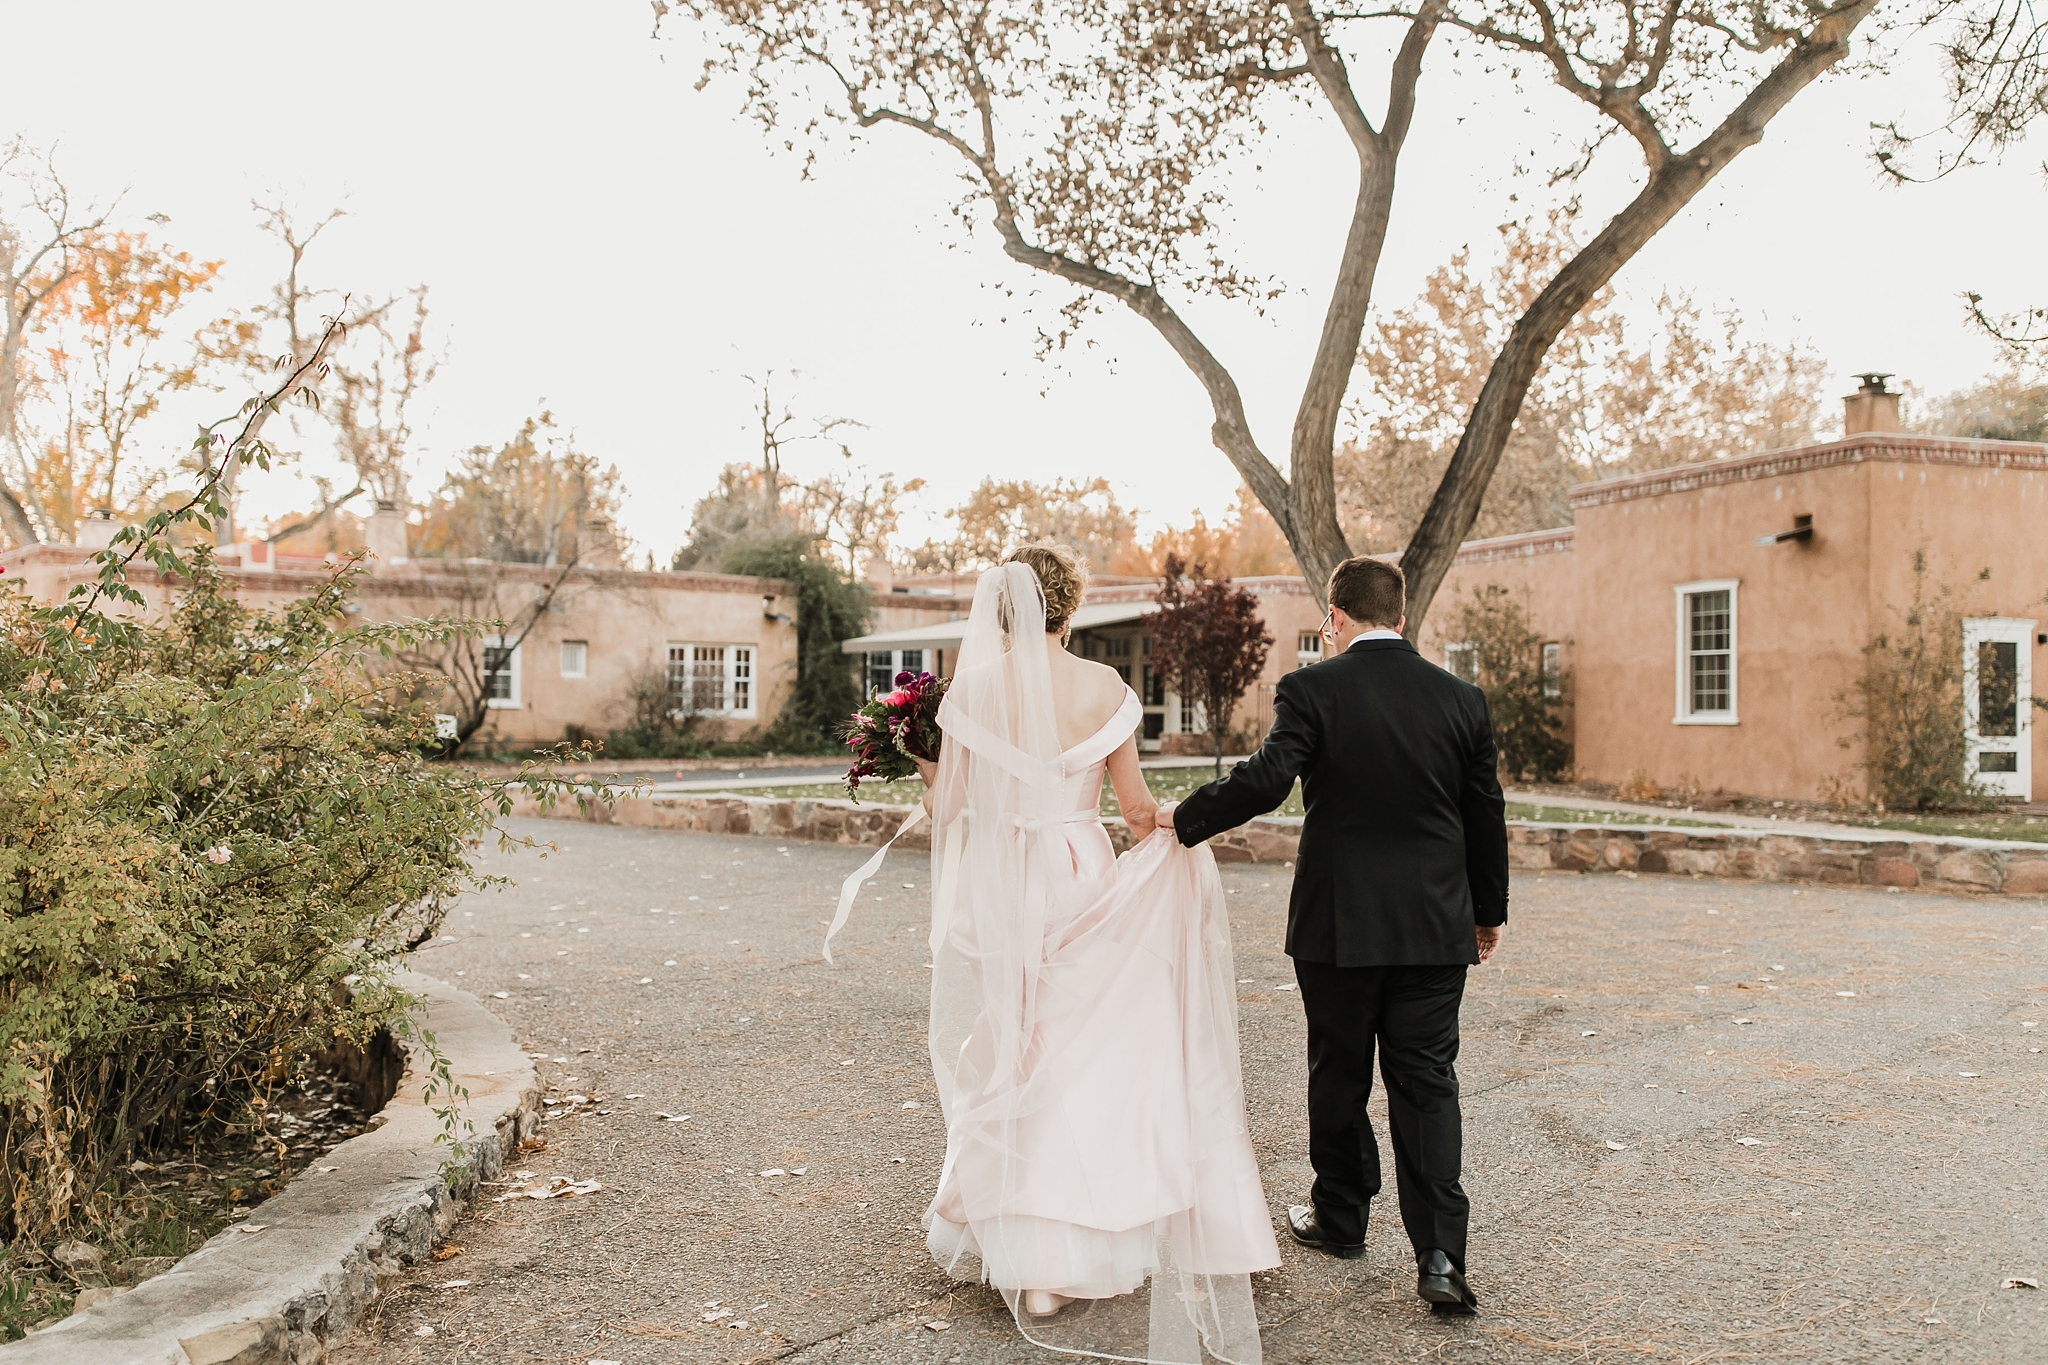 Alicia+lucia+photography+-+albuquerque+wedding+photographer+-+santa+fe+wedding+photography+-+new+mexico+wedding+photographer+-+new+mexico+wedding+-+albuquerque+wedding+-+los+poblanos+wedding+-+fall+wedding_0056.jpg